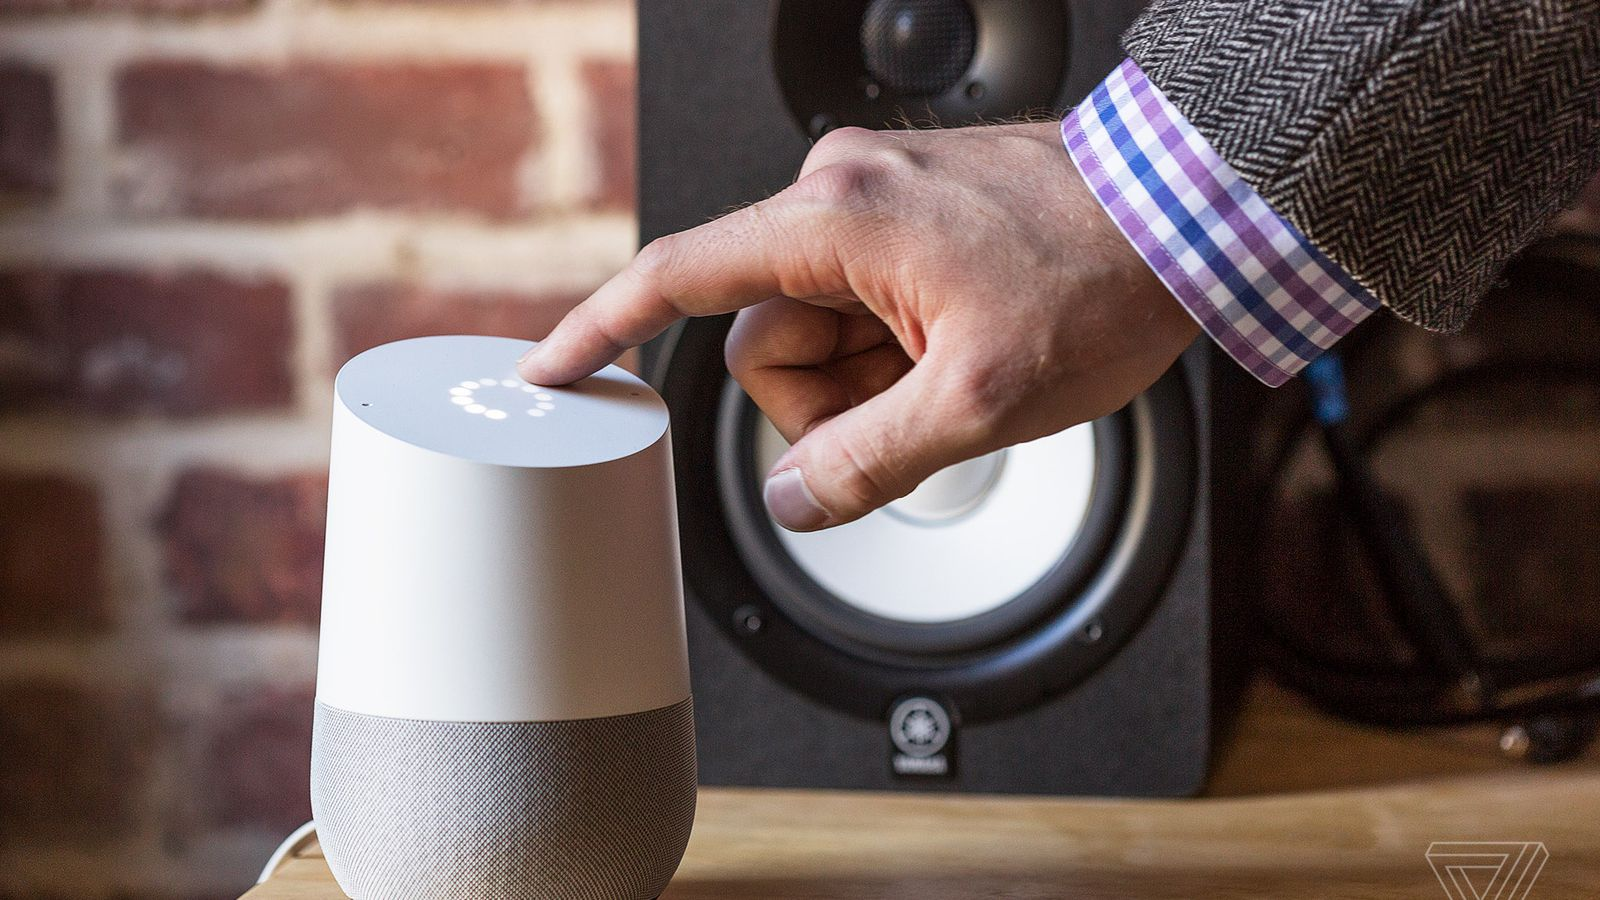 Google Home Now Works with Belkin WeMo and Honeywell Smart Devices